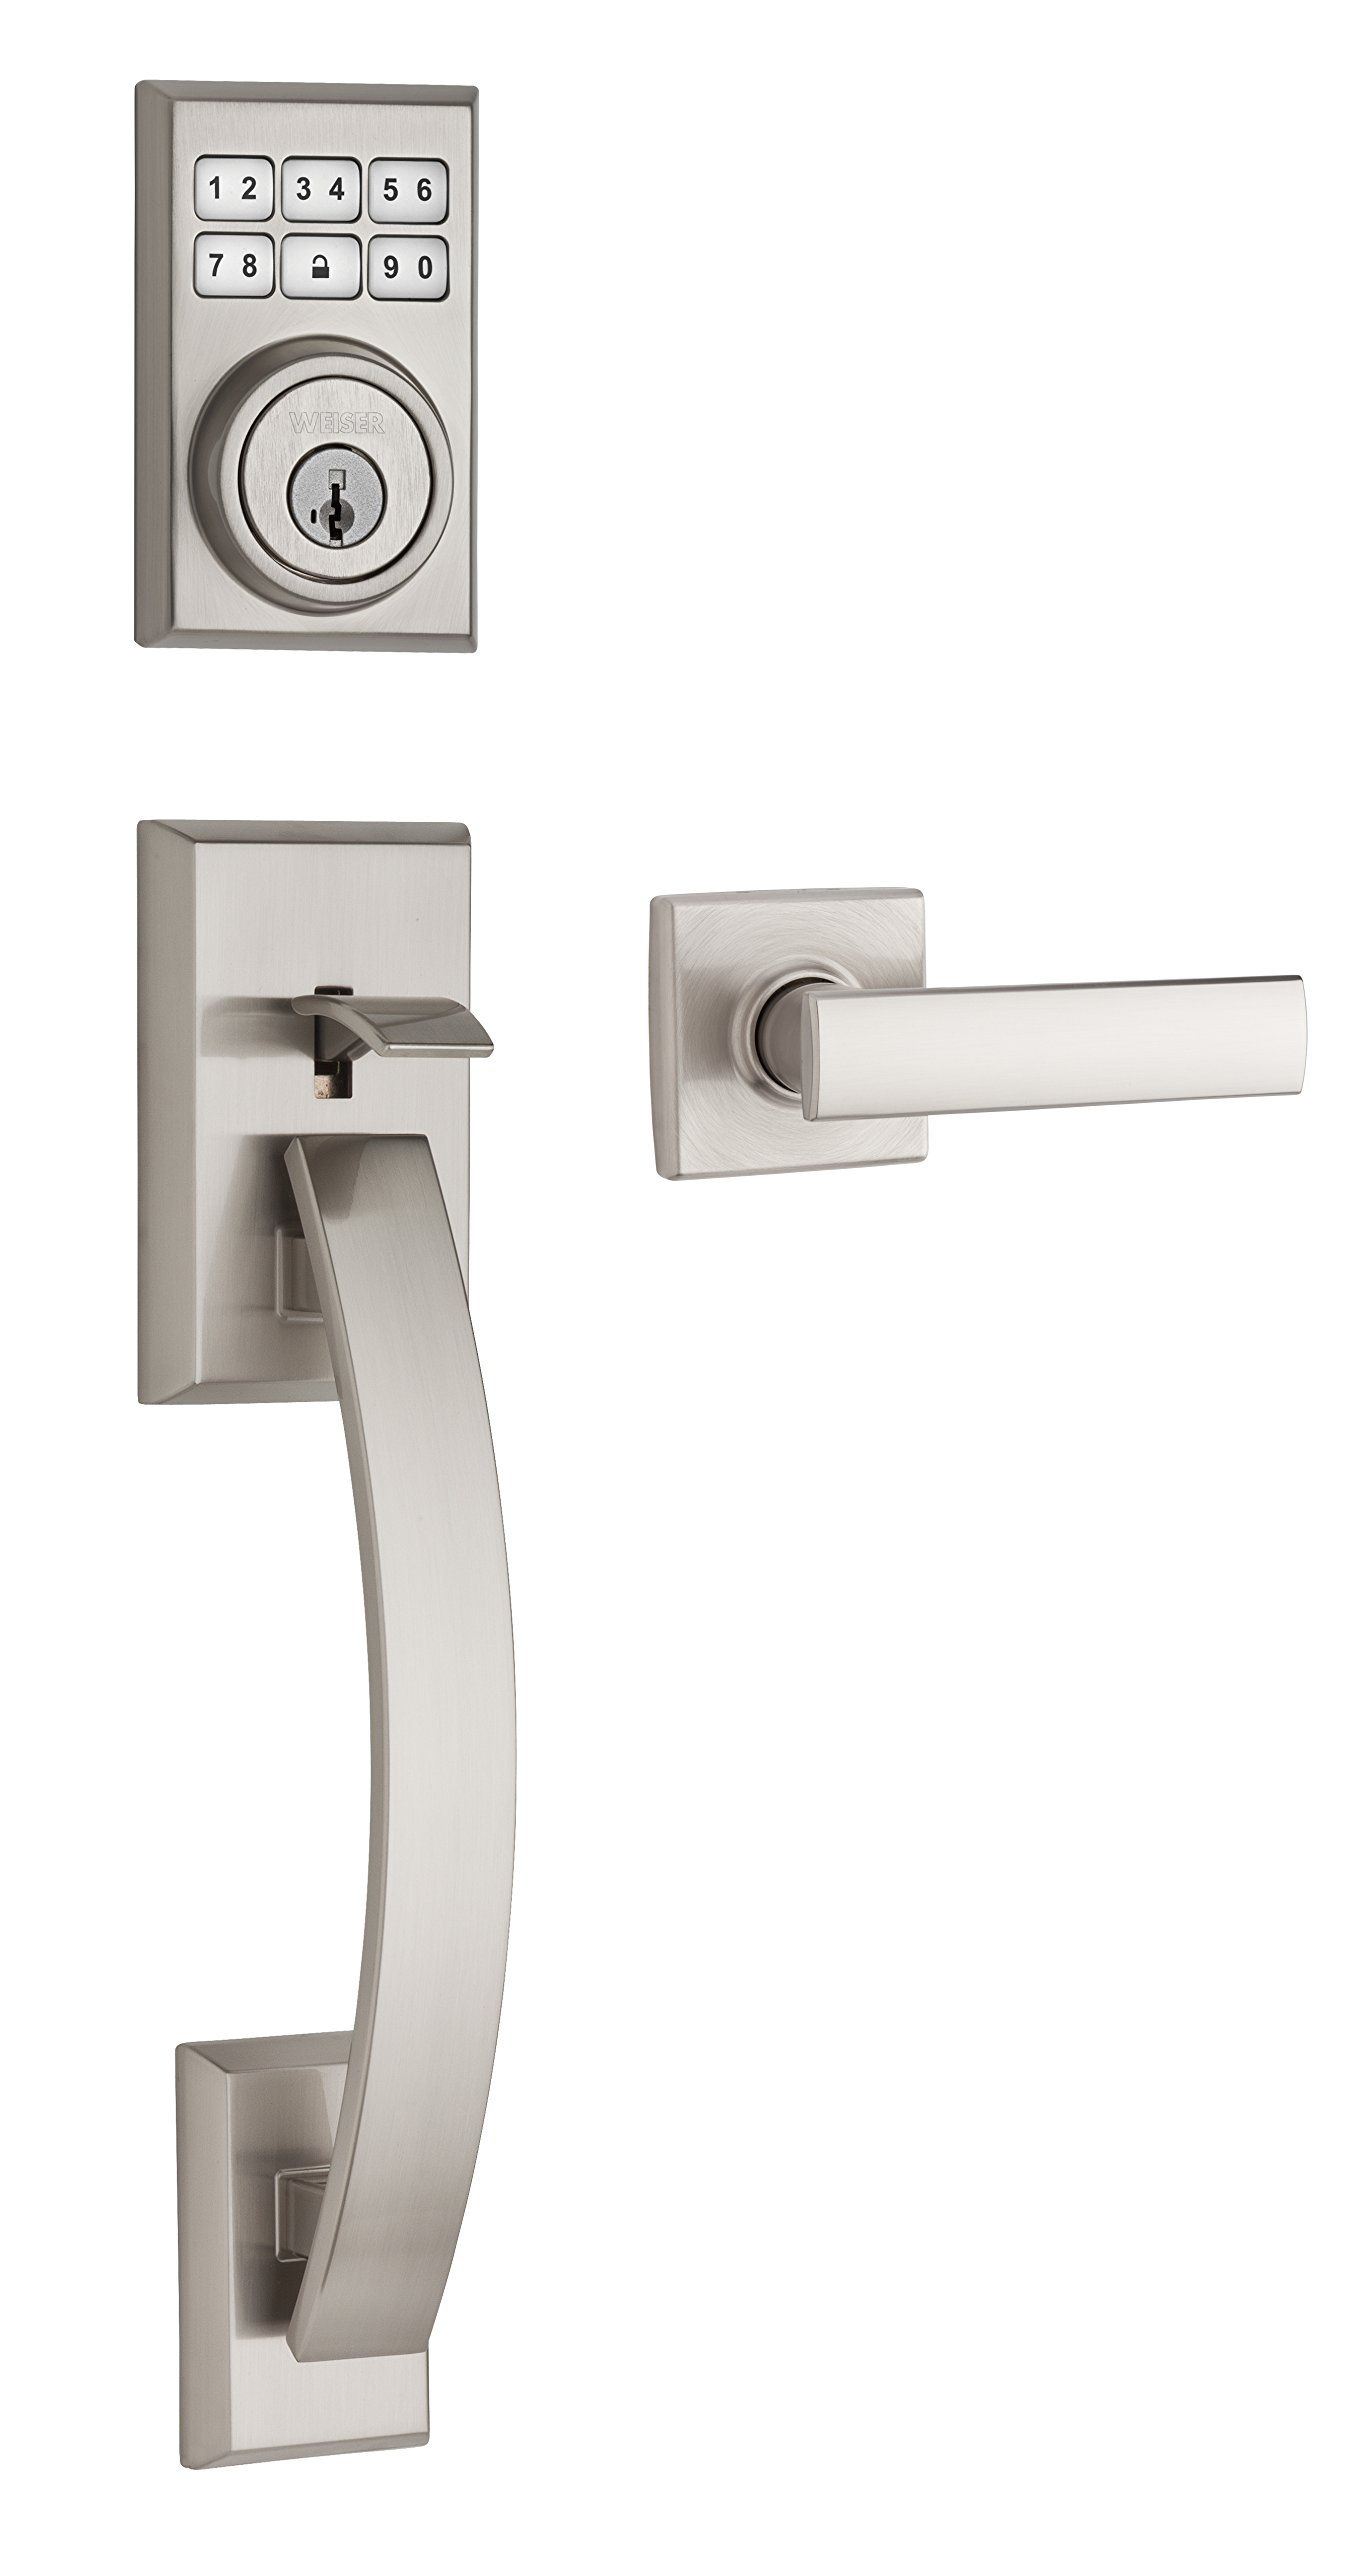 Weiser SmartCode 5 Electronic Door Handle Set Featuring SmartKey, Tavaris Keypad Door Lock and Vedani Lever, Satin Nickel (9GLA14900-002) product image